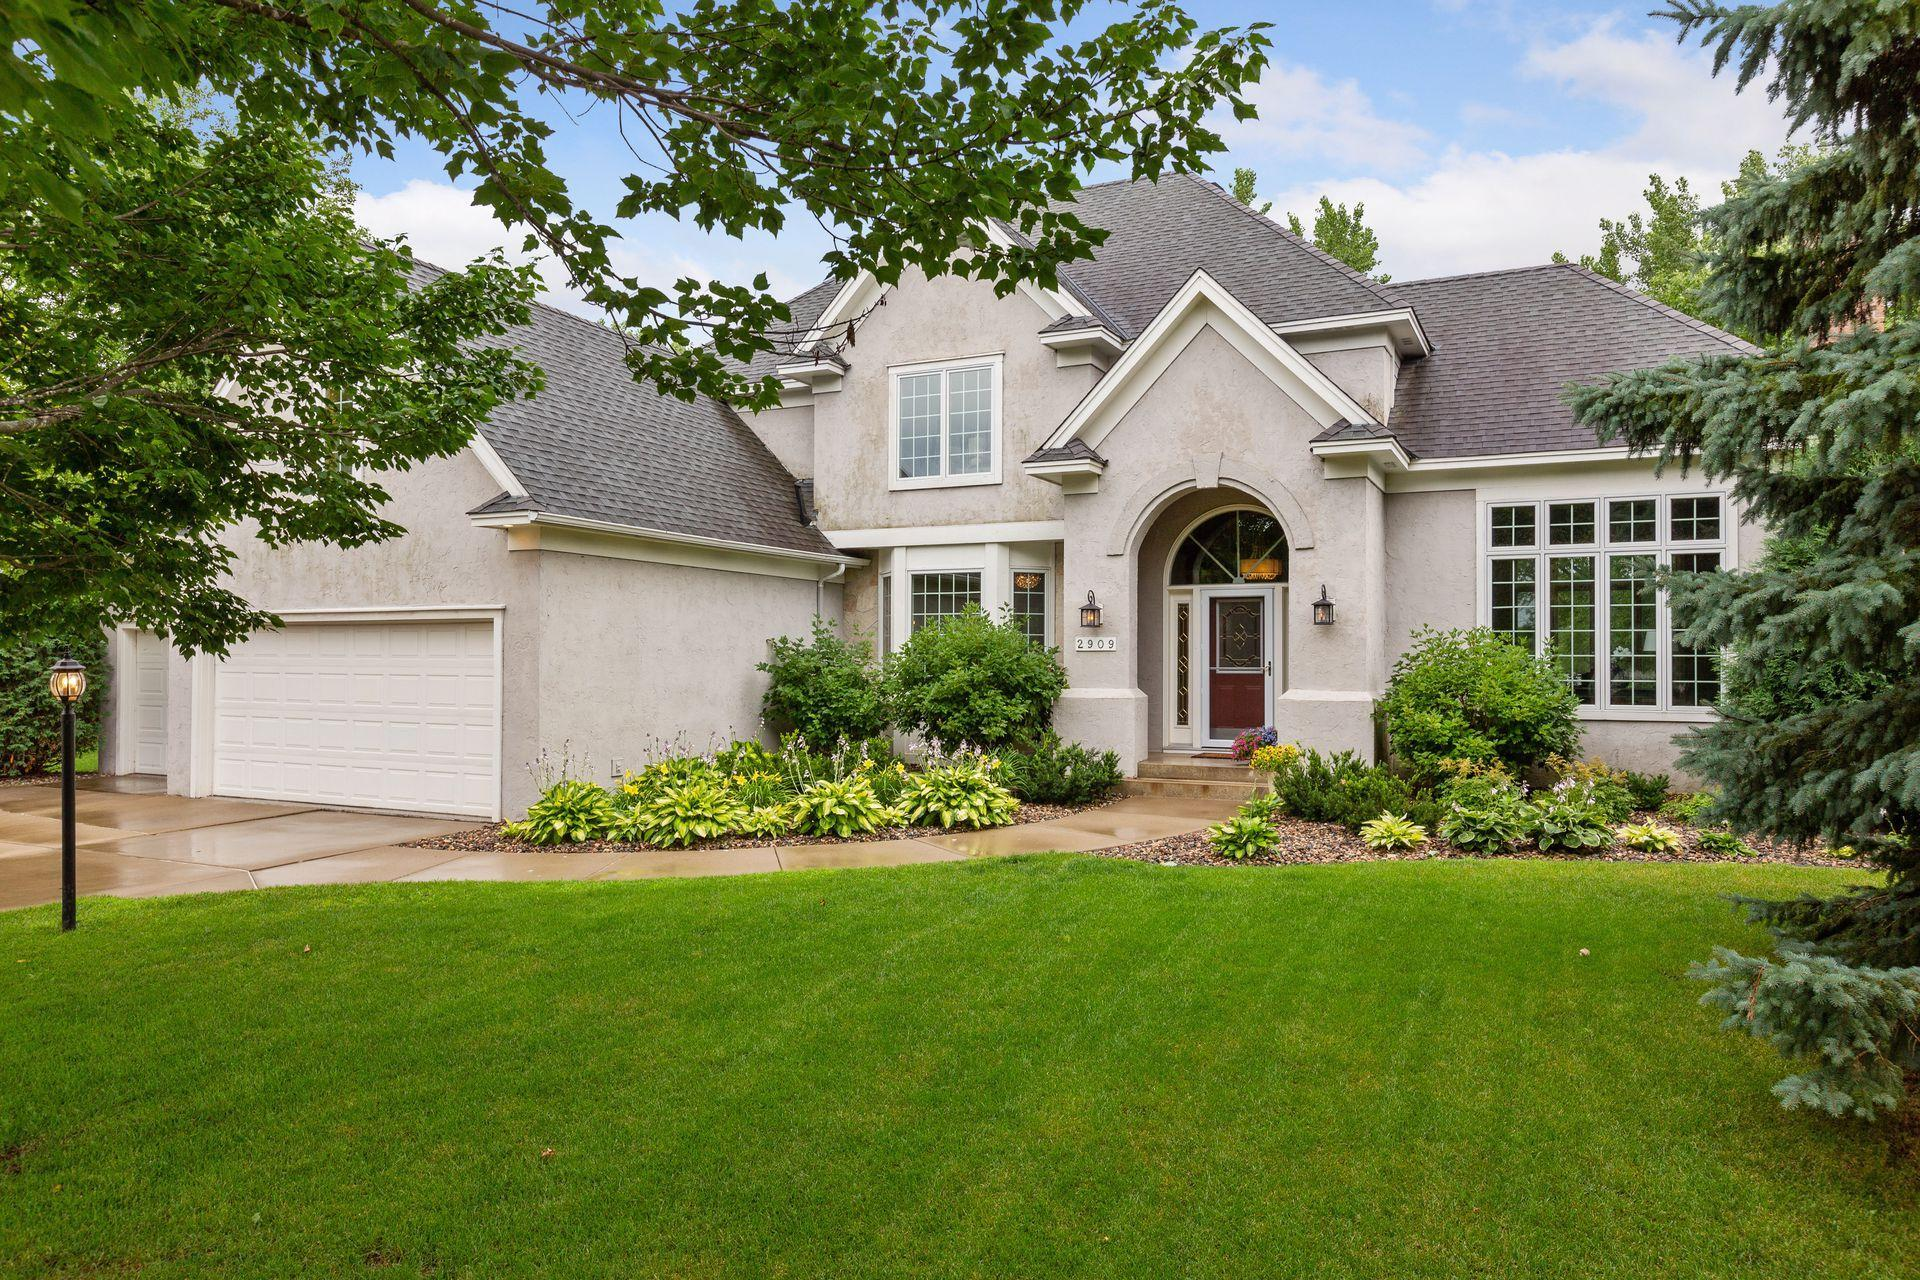 2909 Edgewater Cove Property Photo - Woodbury, MN real estate listing